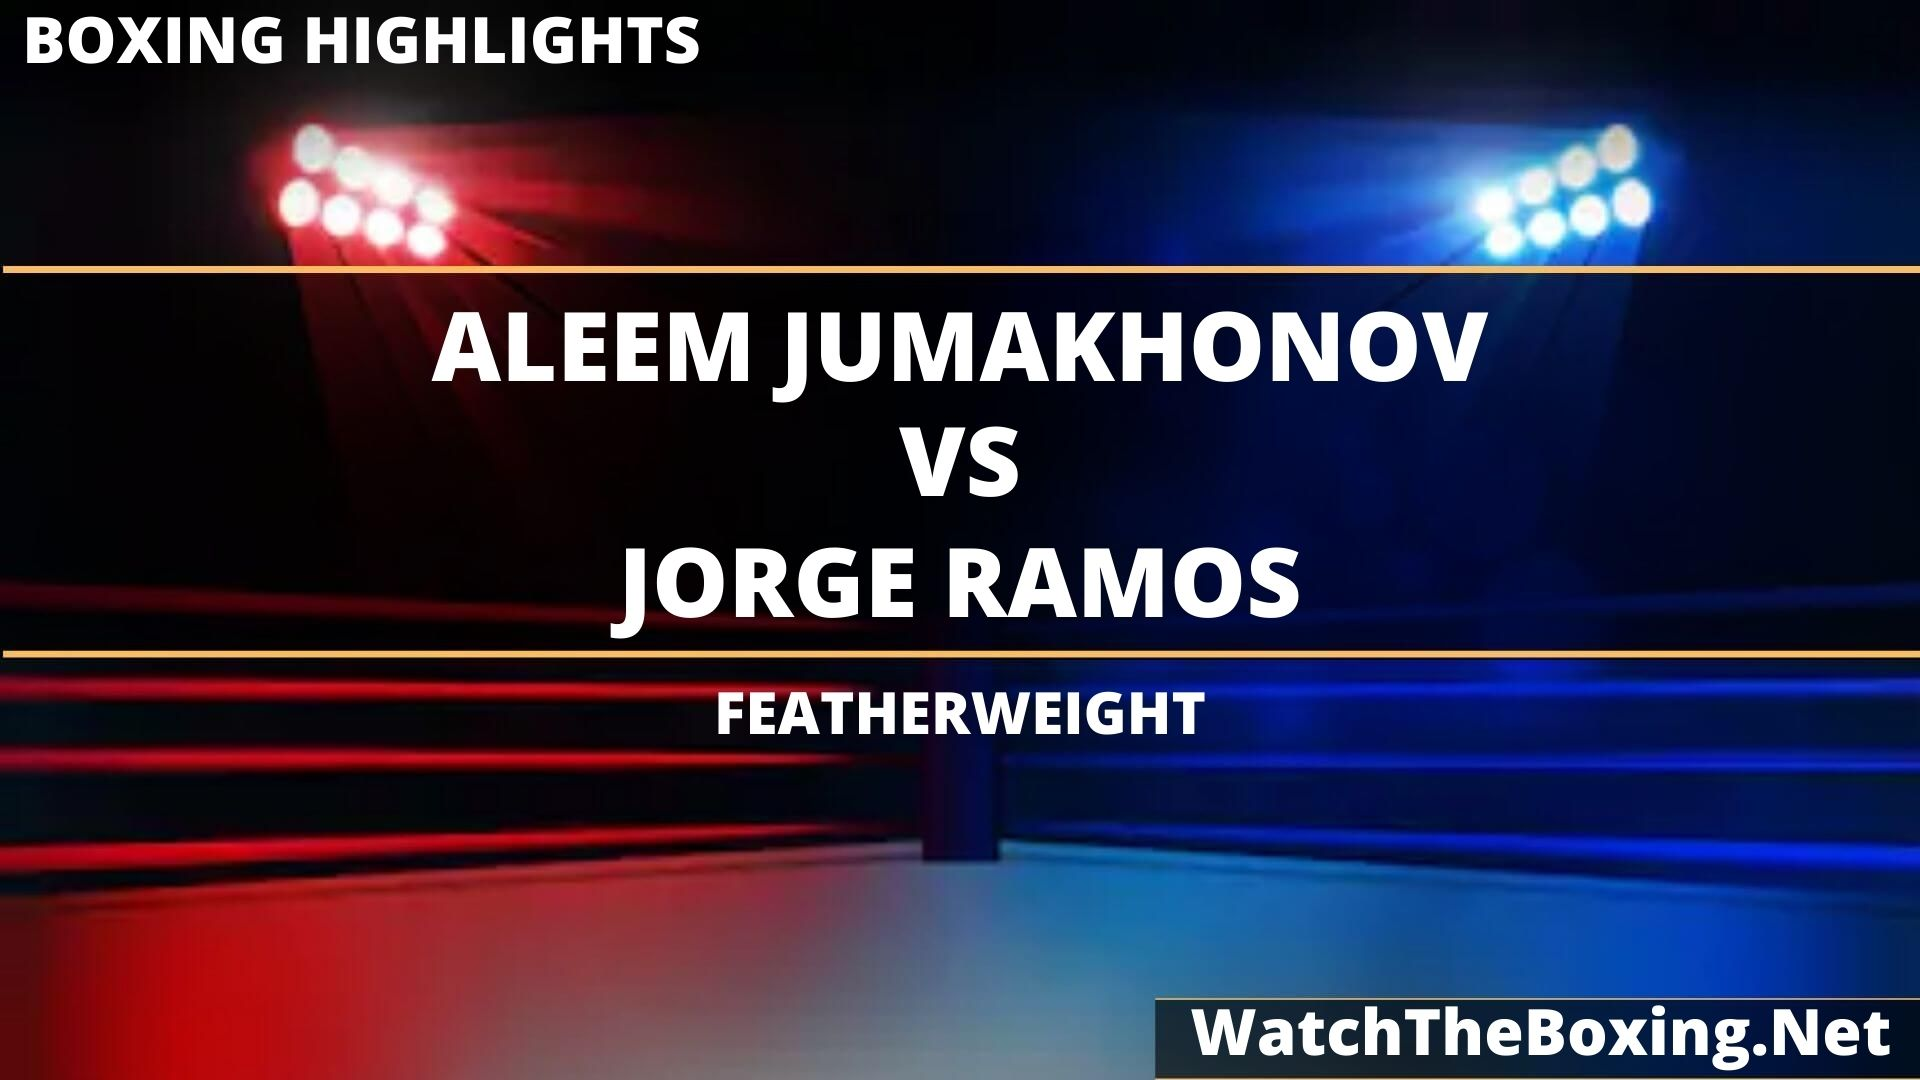 Aleem Jumakhonov Vs Jorge Ramos Highlights 2020 Featherweight